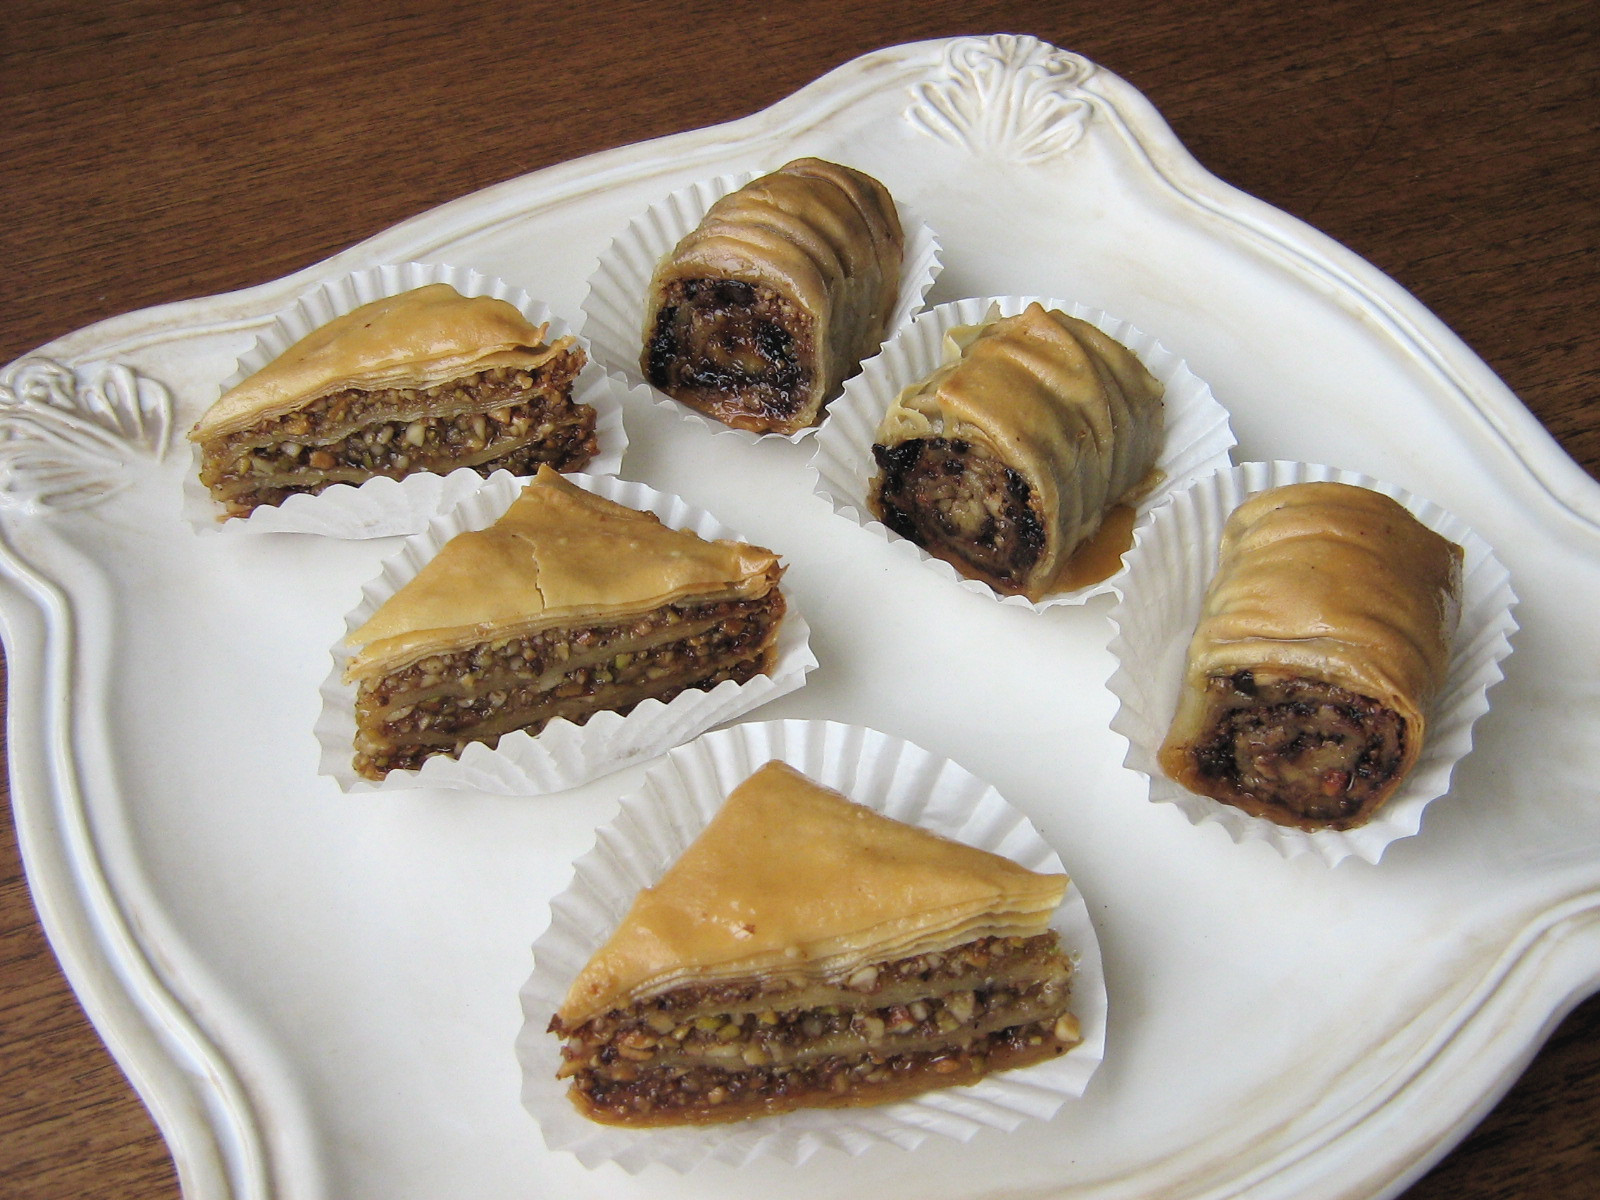 Phyllo Dough Desserts Recipes  Daring Bakers Baklava with Homemade Phyllo Pastry